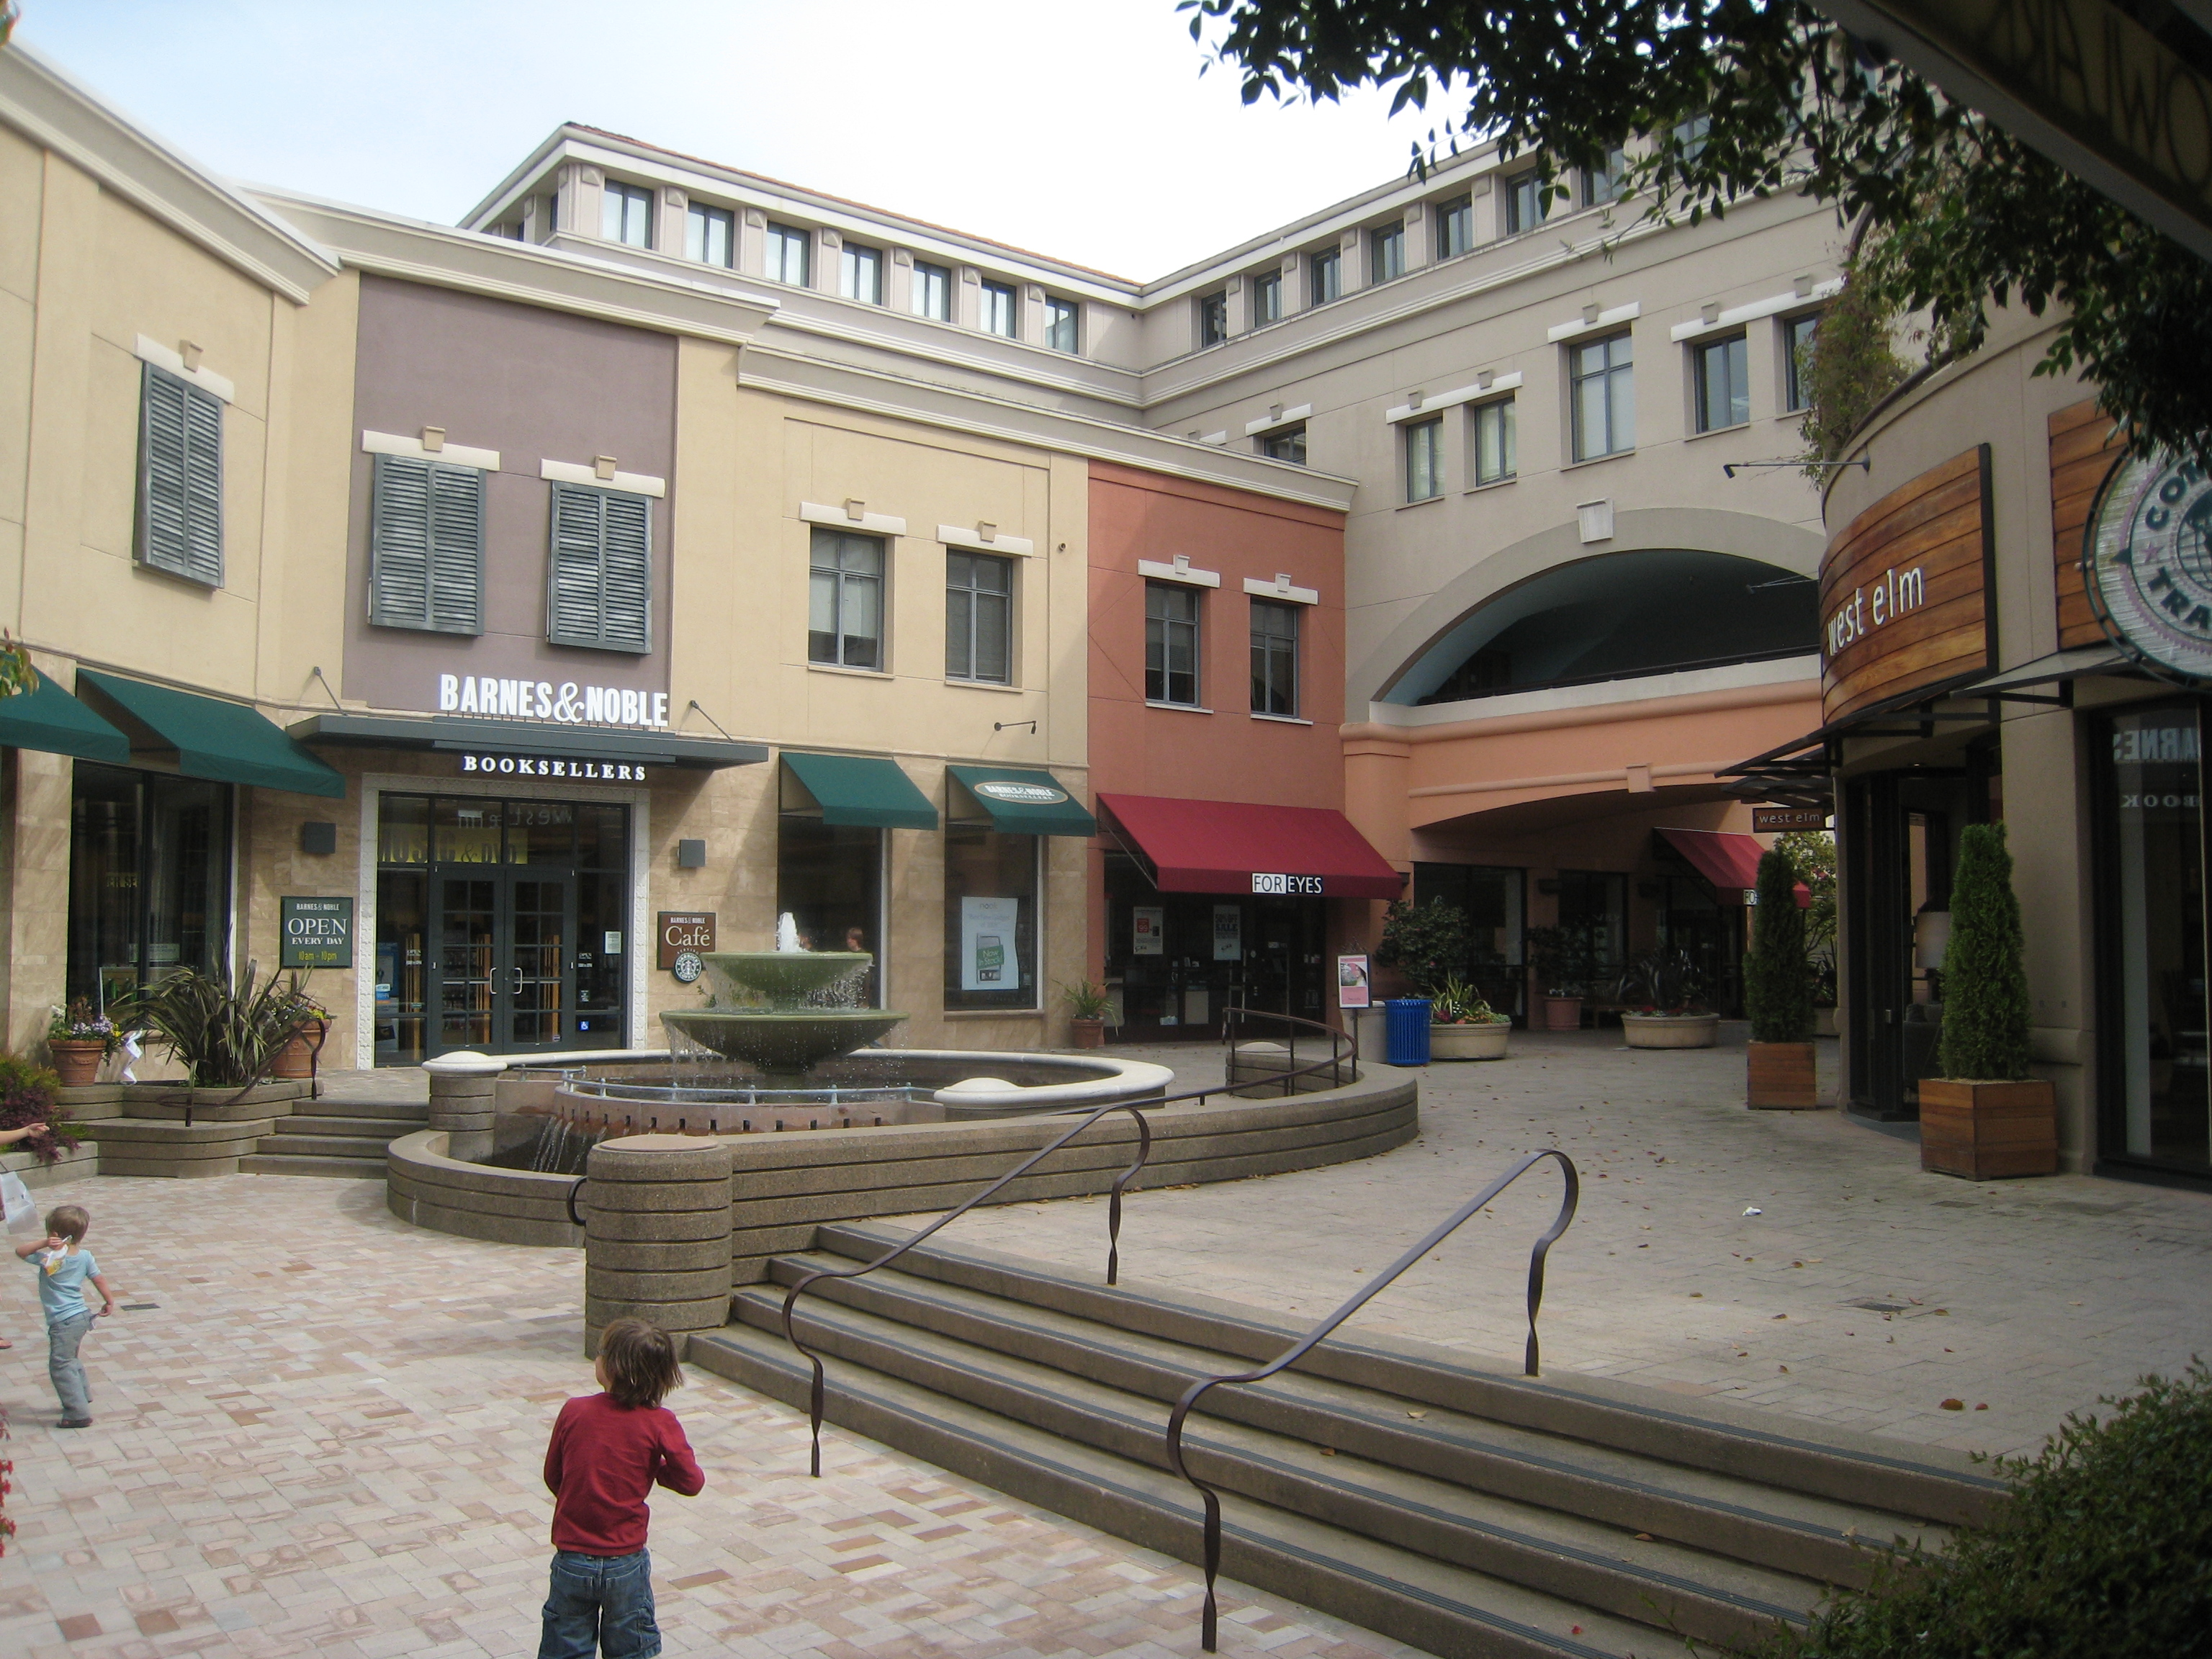 corte madera chatrooms Free, trusted local advisors in corte madera have helped more than 31 families find senior apartments in your area call 855-217-0151 to connect with one of our senior living advisors now to get personalized referrals to local senior apartments communities at no cost to you get pricing, read reviews, schedule tours and more.